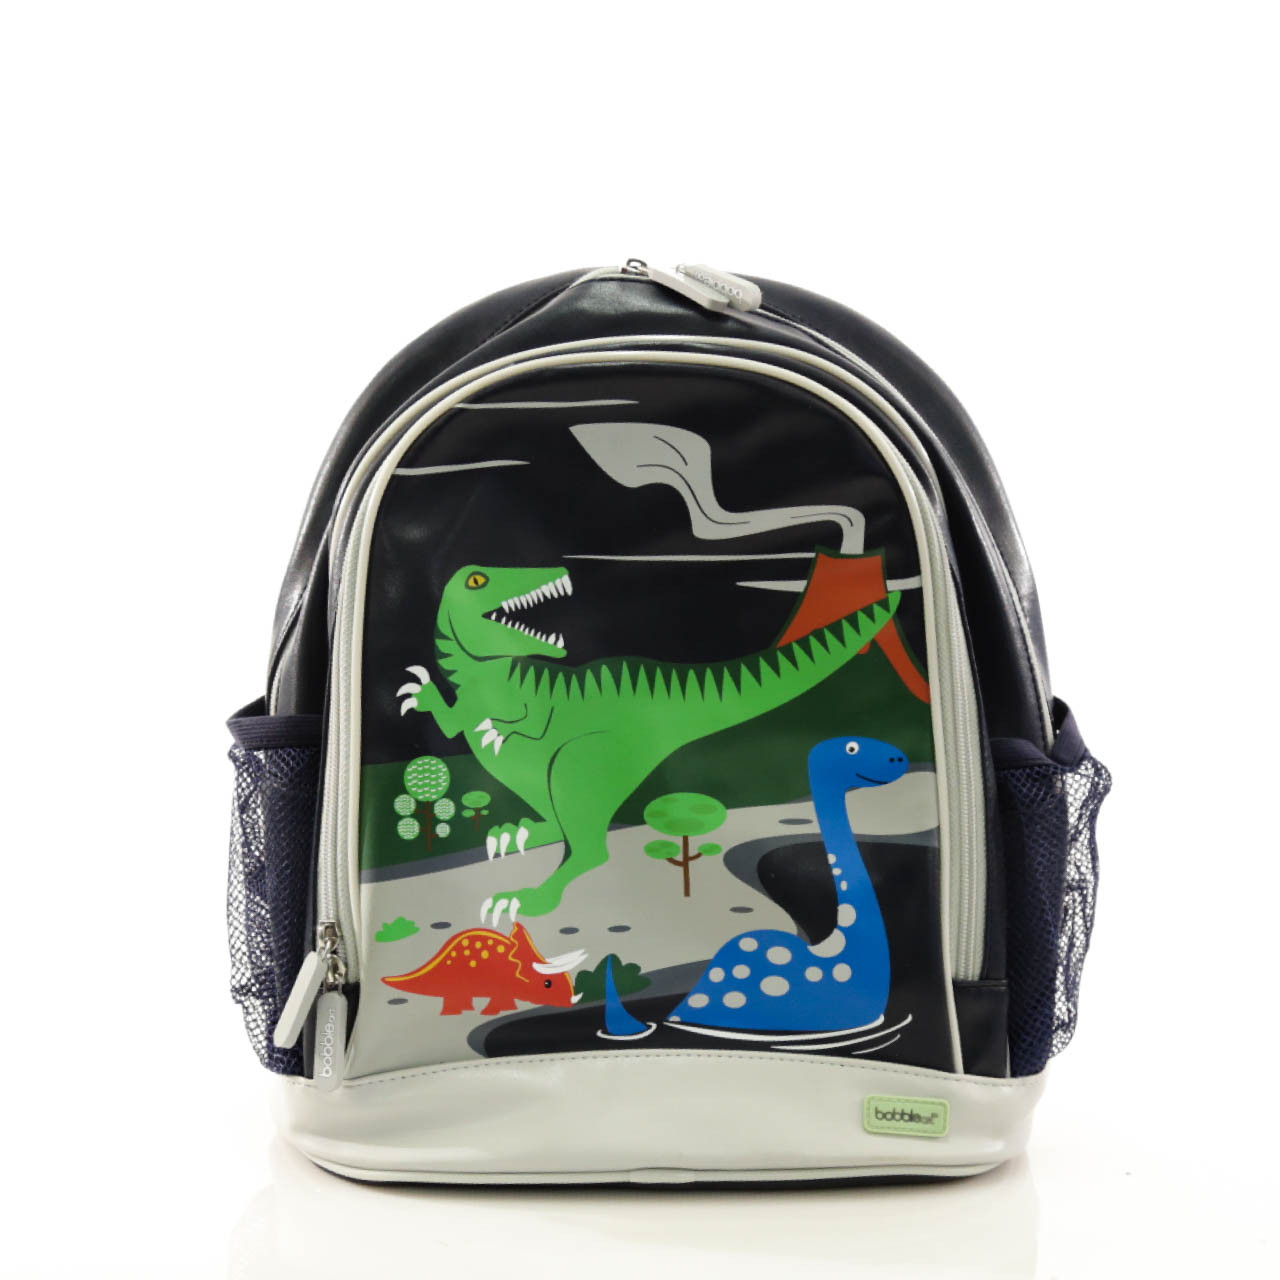 f9902f7089 Large Backpack for Toddlers. Bobble Art Dinosaur Backpack. See more images